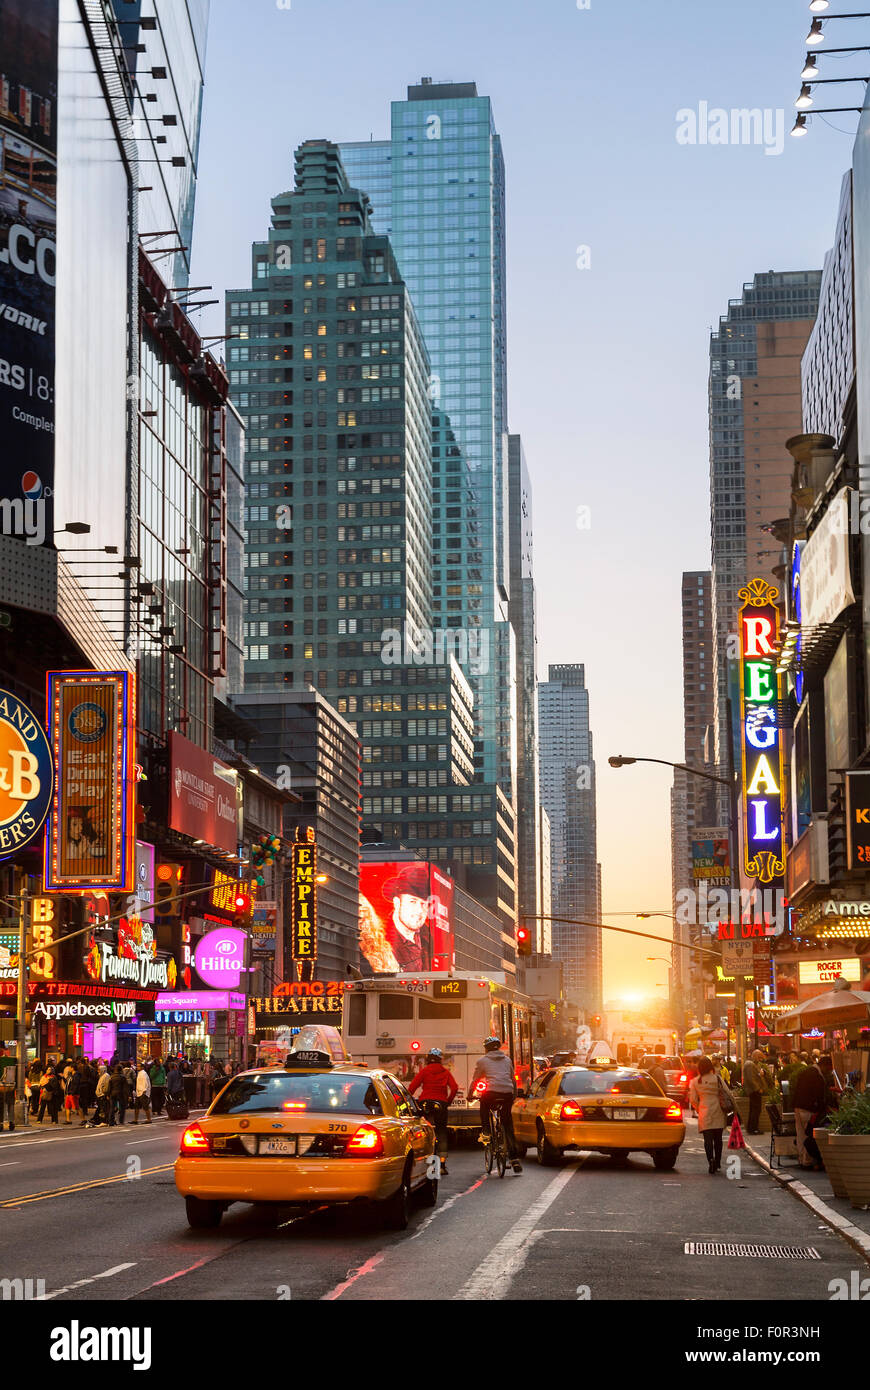 New York City, Traffic on the 42 nd Street - Stock Image